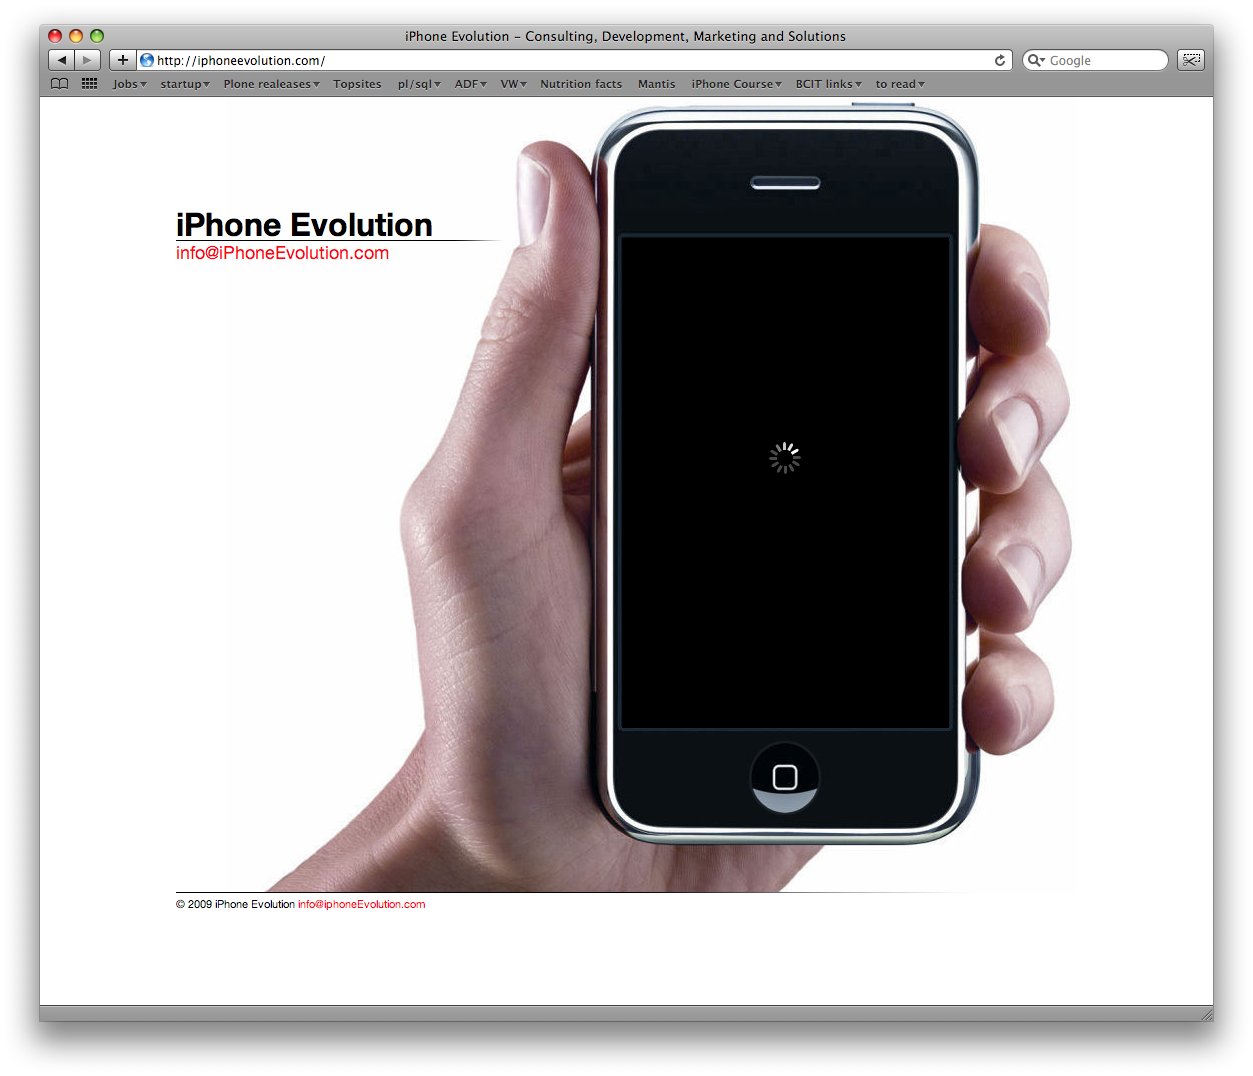 iPhoneEvolution.com